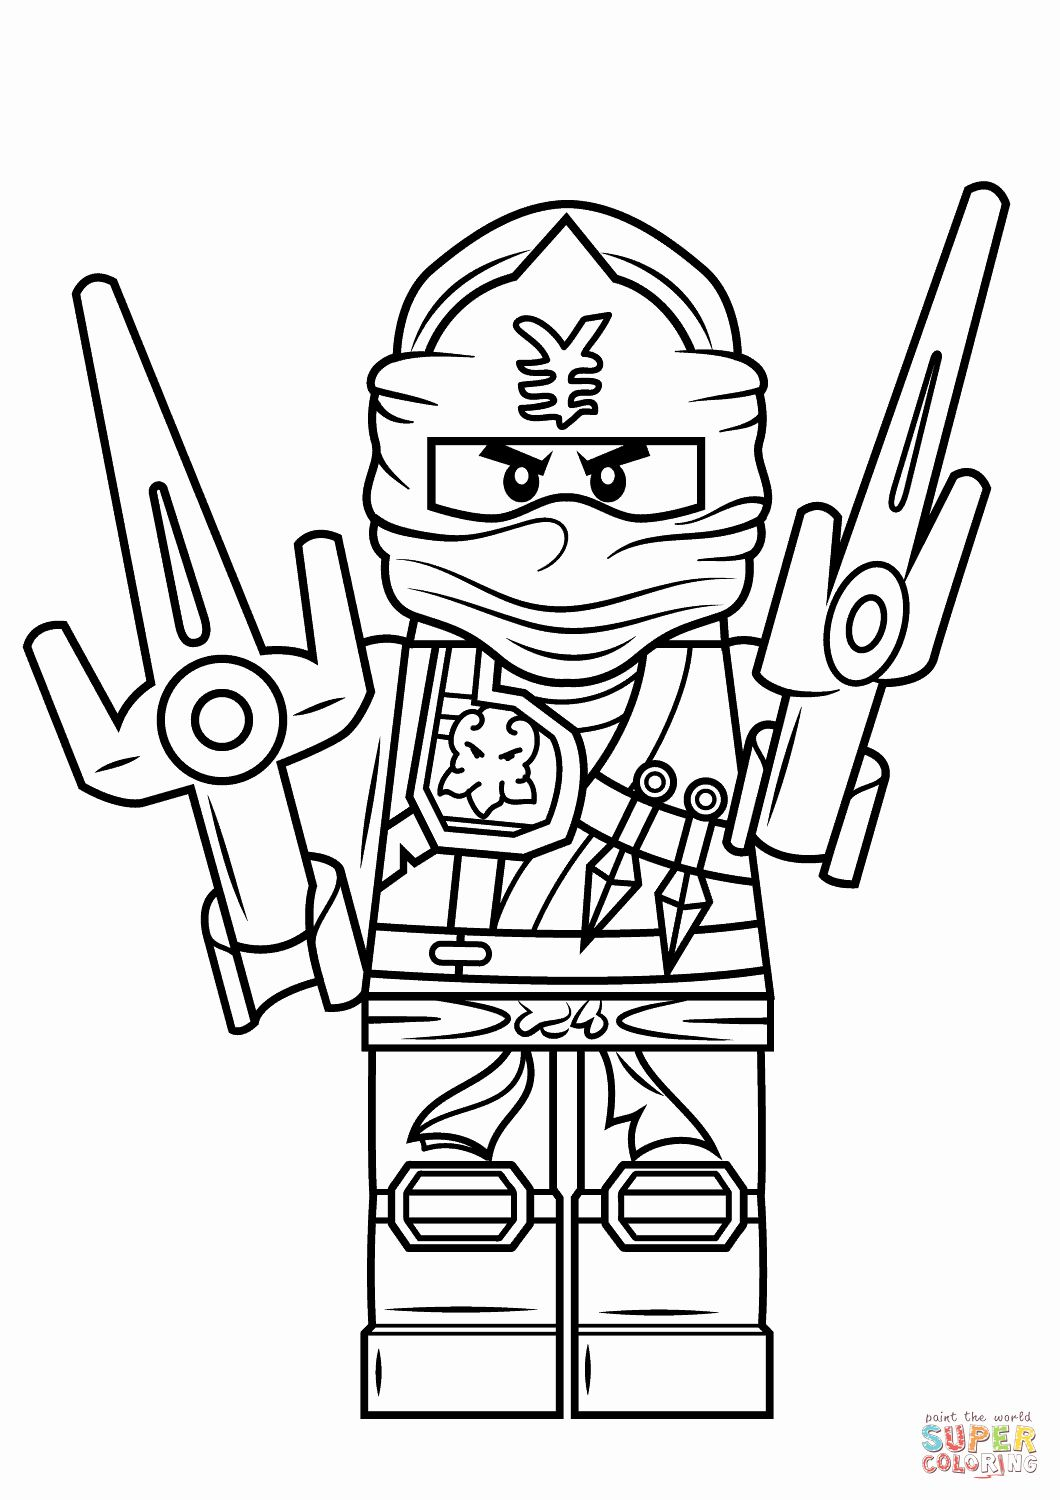 17 Free Lego Ninjago Movie Printable Activities Online Games Mrs Kathy King Ninjago Coloring Pages Lego Coloring Pages Lego Ninjago Birthday